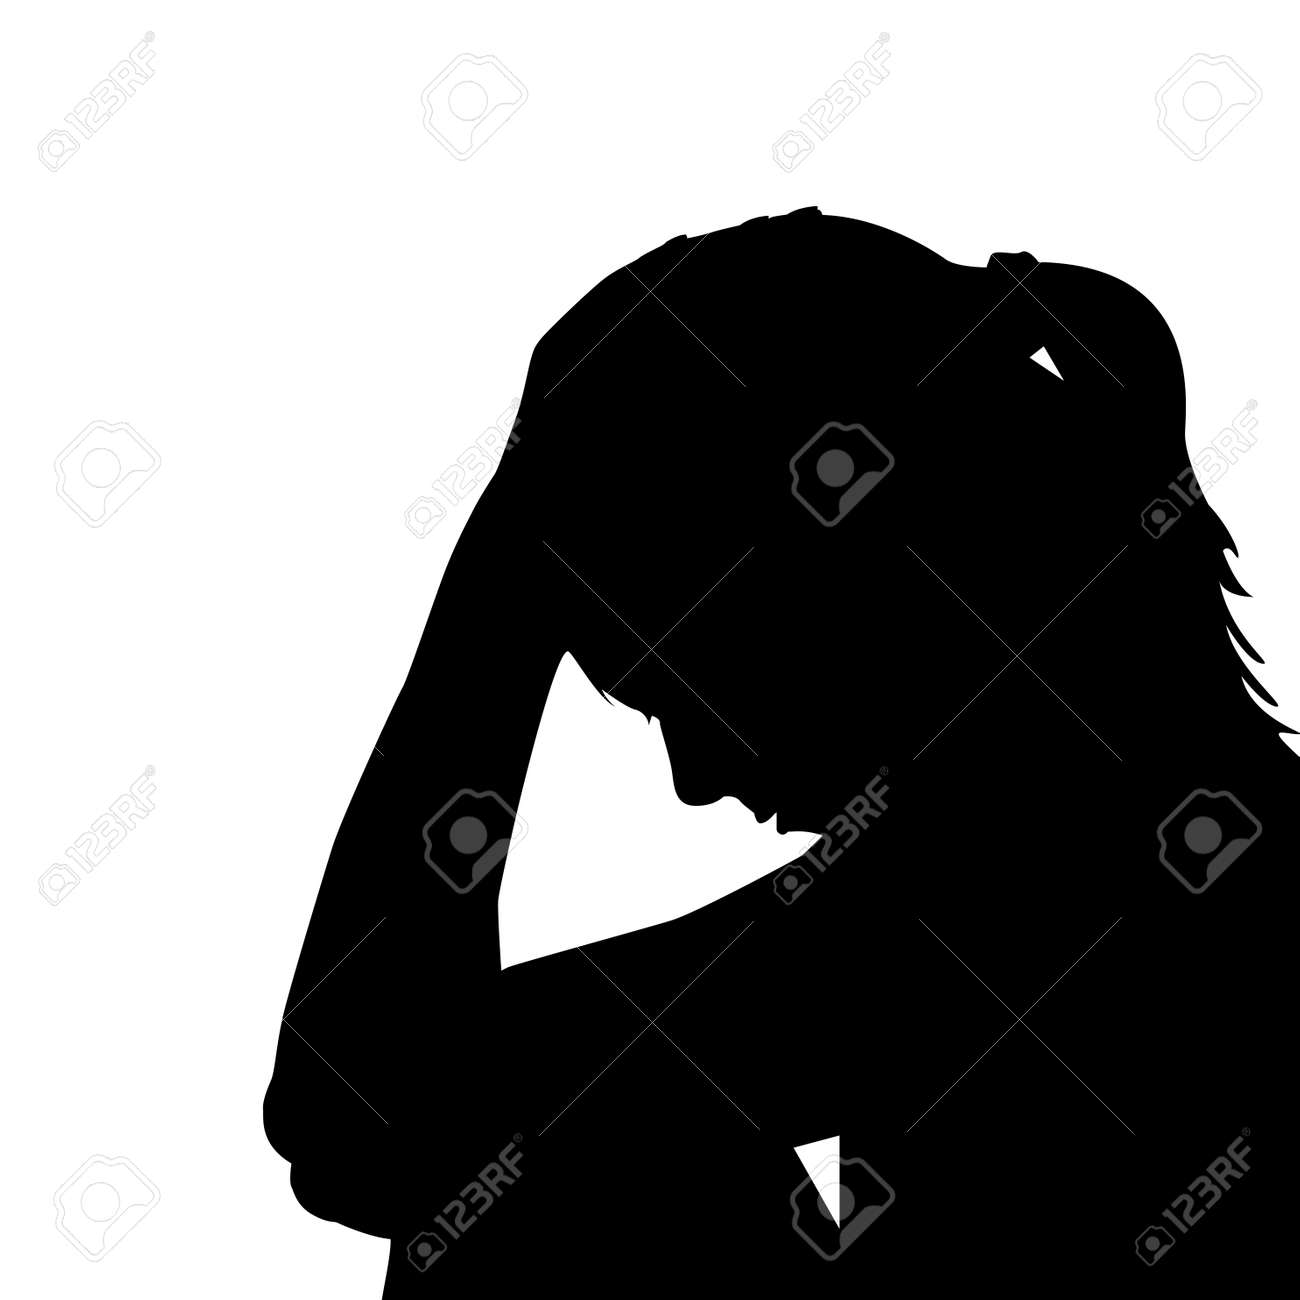 One sad woman holding her head in her hands, vector illustration. - 89064220